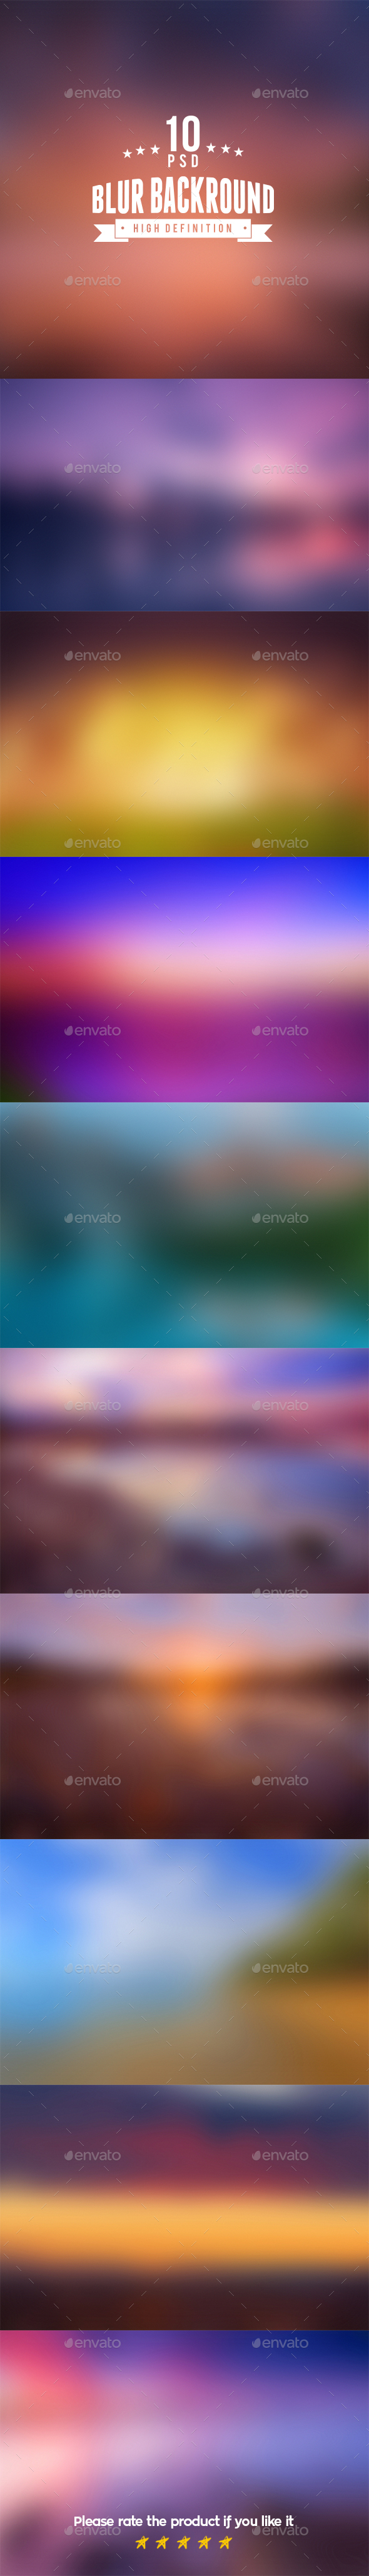 Blurred High Definition Backgrounds - Backgrounds Graphics